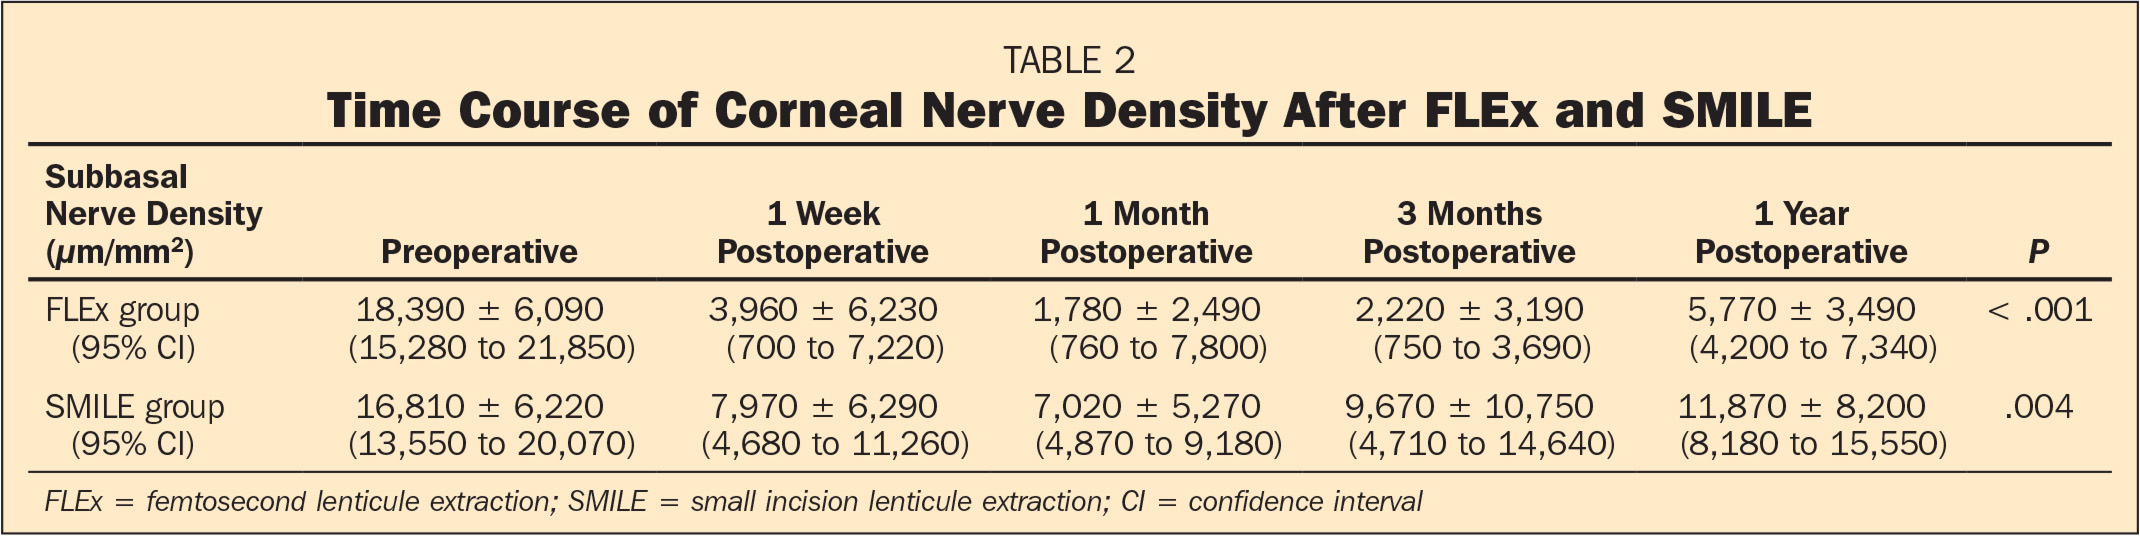 Time Course of Corneal Nerve Density After FLEx and SMILE